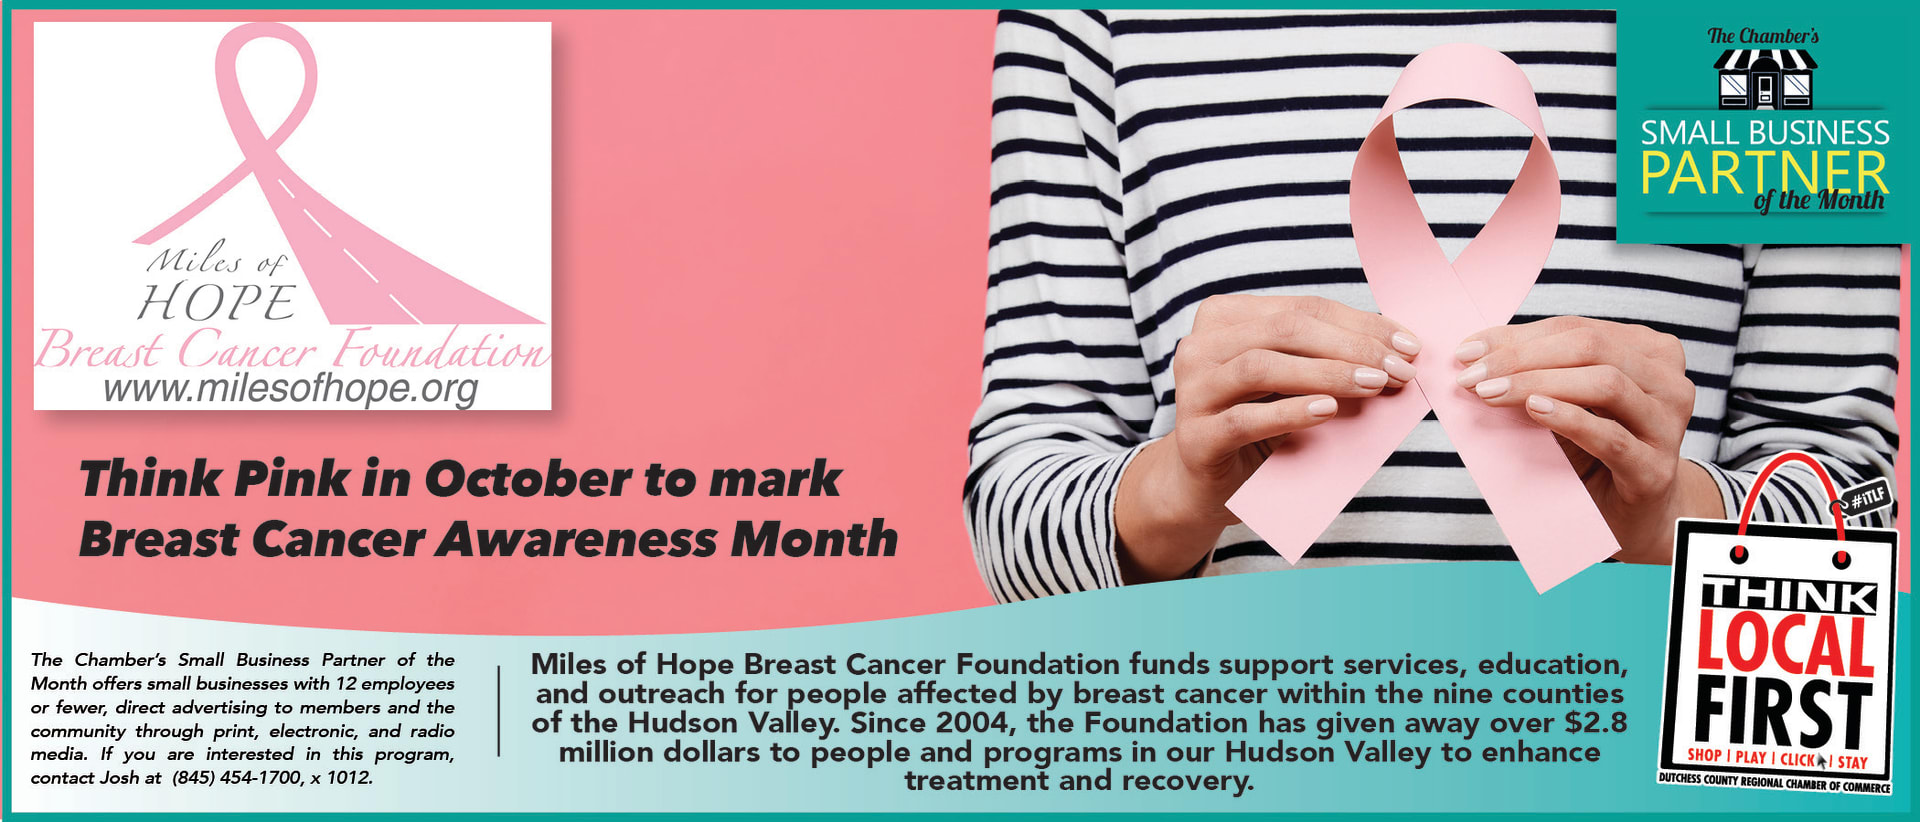 This is an advertisement for the Chamber's small business Partner of the month, a program that small businesses can take advantage of if they are members. Click here to visit Miles of Hope website.